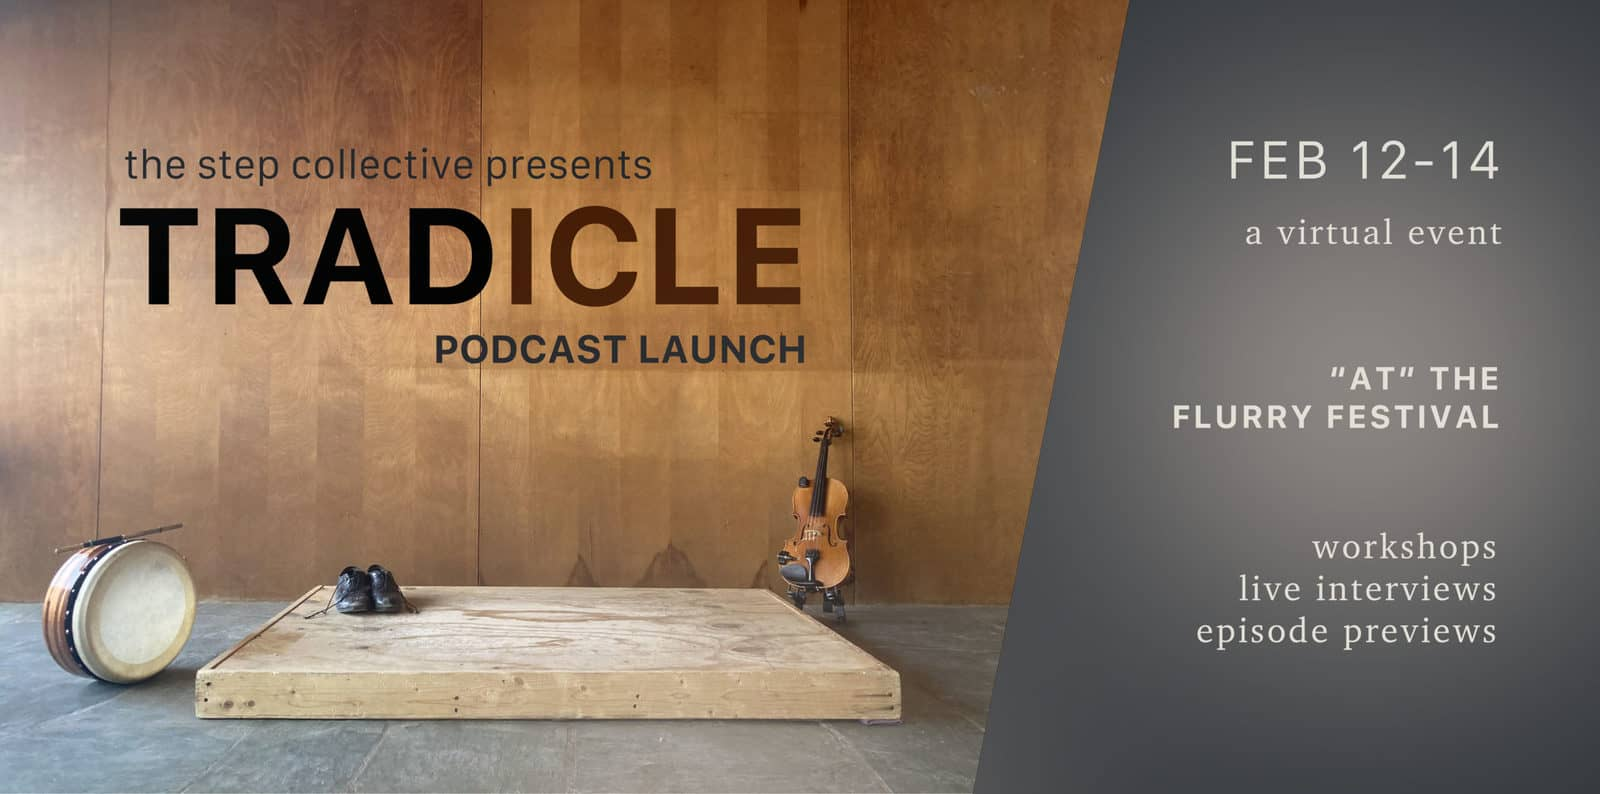 Tradicle Launch Event